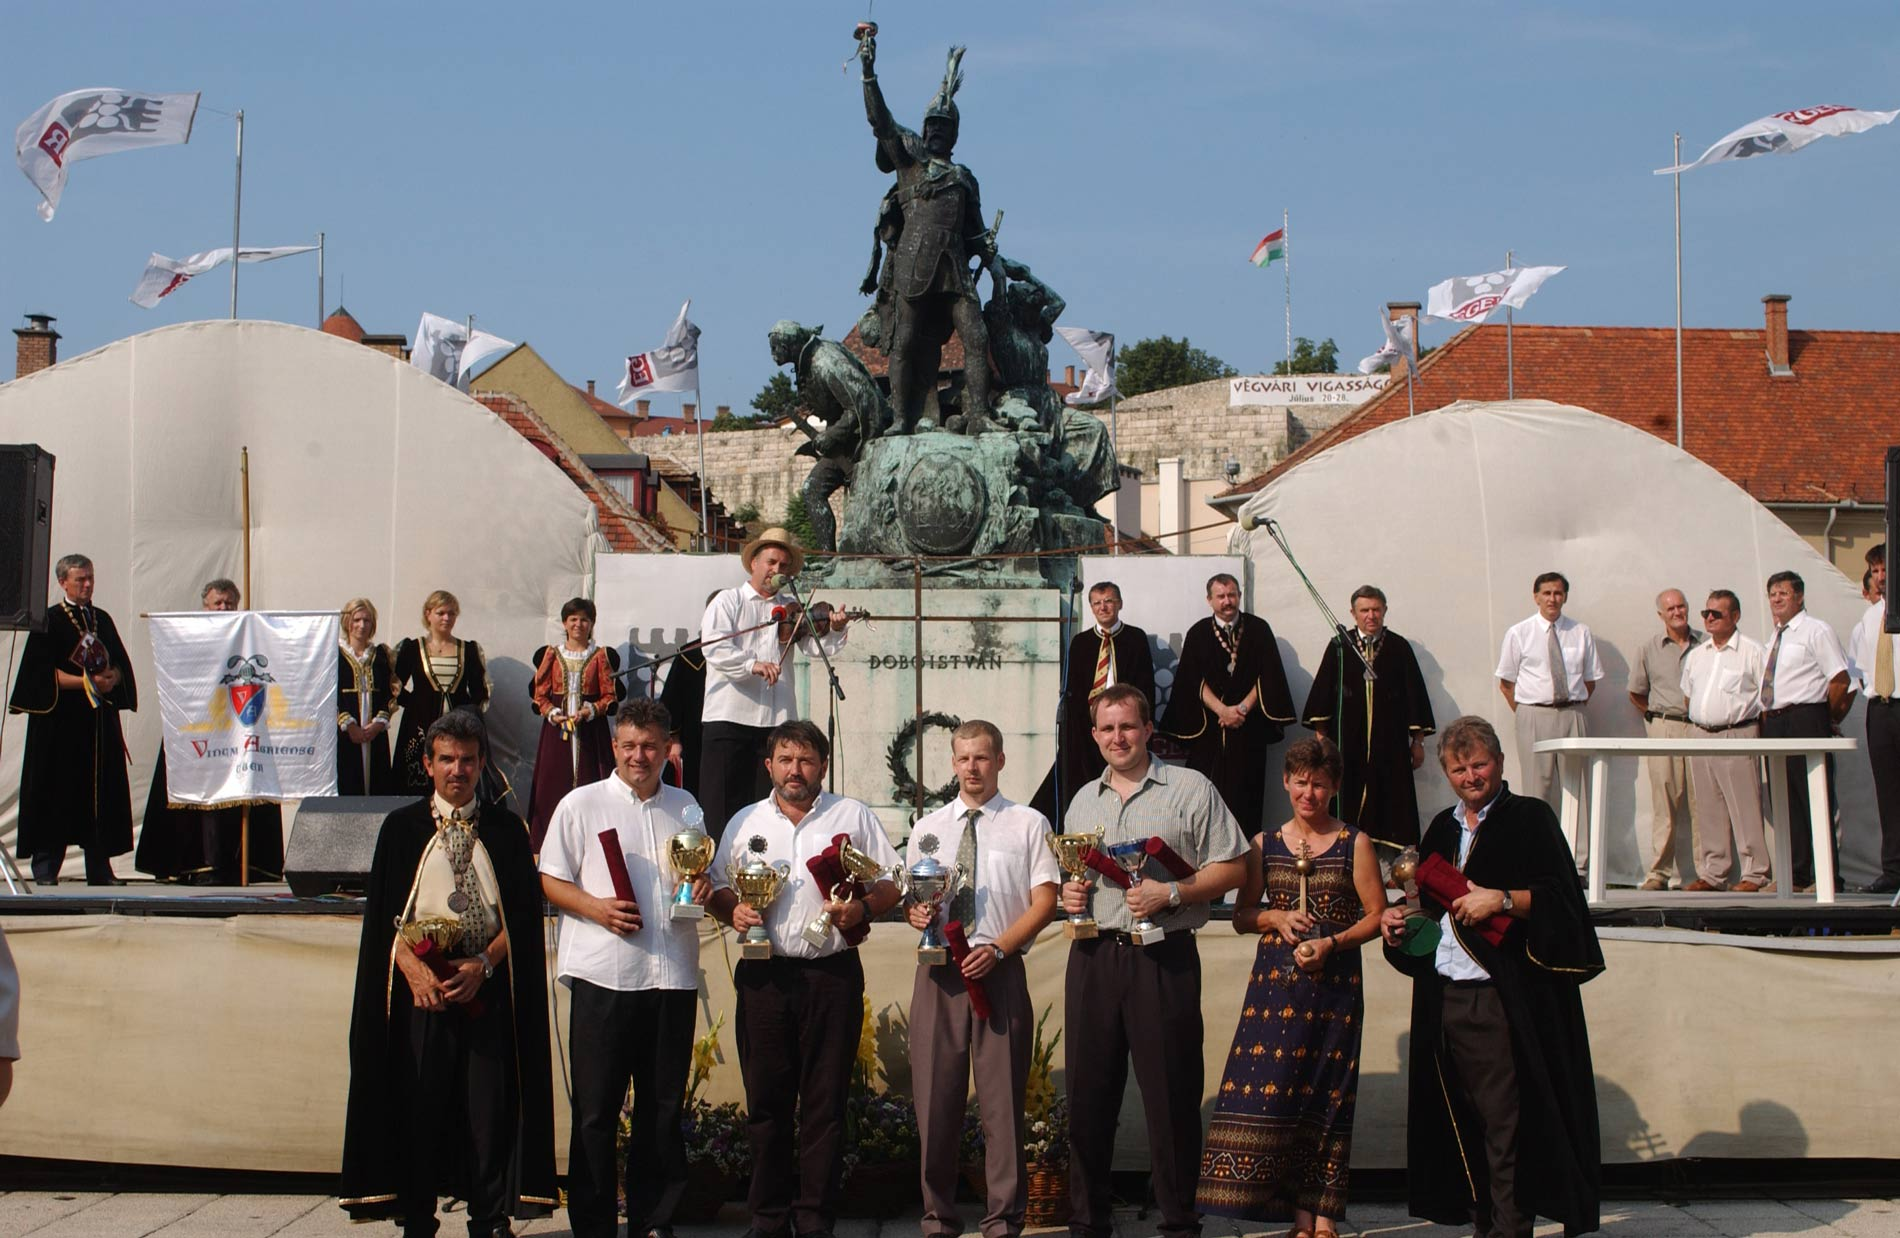 The Wine Producer of the Year in Eger Common Award